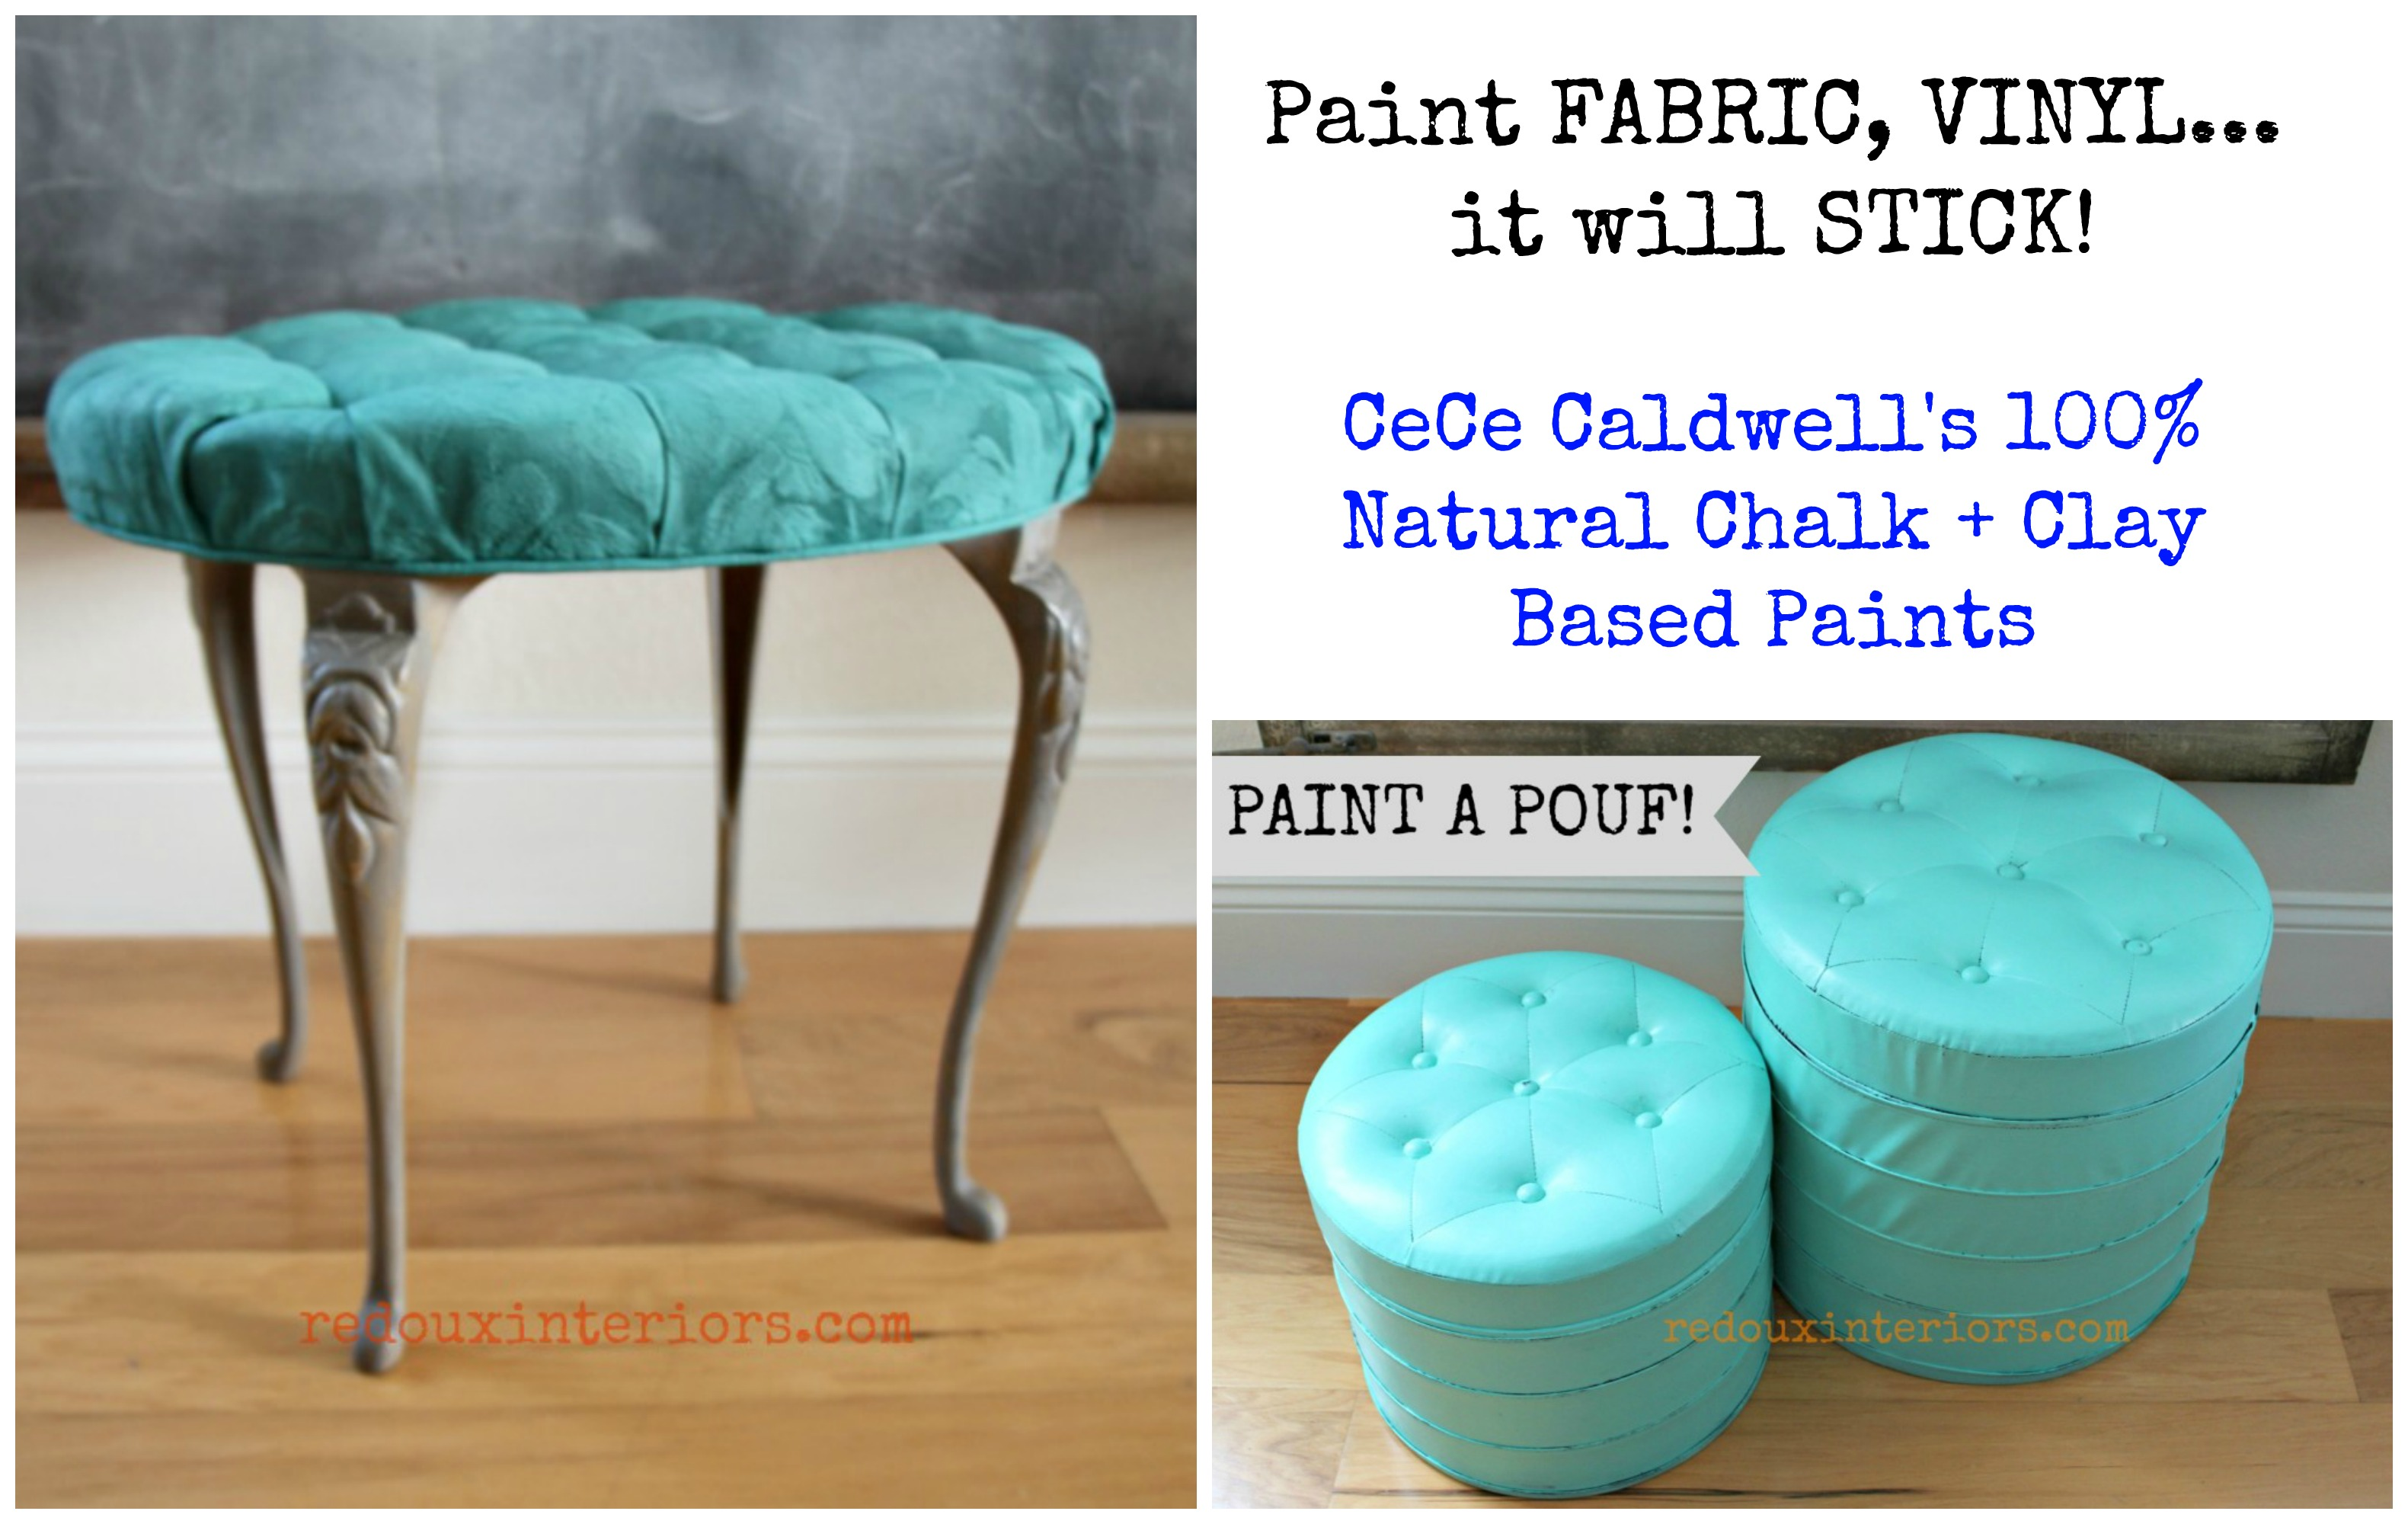 How To Paint Fabric Or Vinyl Using CeCe Caldwellu0027s Paints   Redoux Interiors